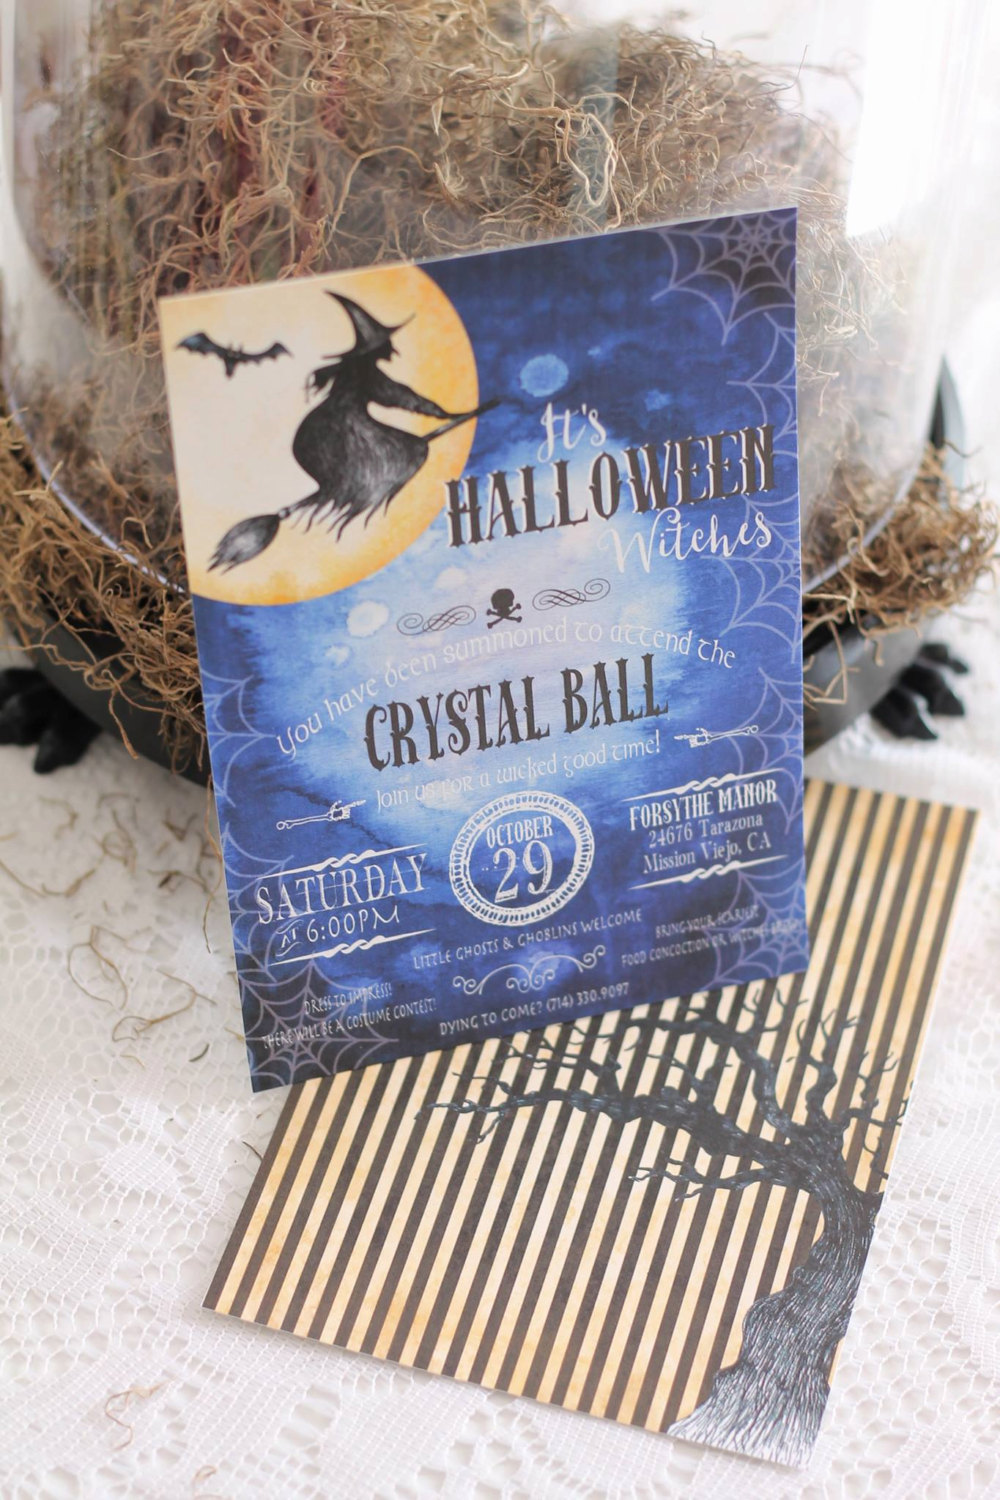 The Halloween Witches Crystal Ball party invitation from Just a Little Sparkle / from Halloween Party Invitations that Guest Will Love / Halloween Party Printables / Printable Halloween Invitations / as seen on Giggle Hearts www.gigglehearts.com